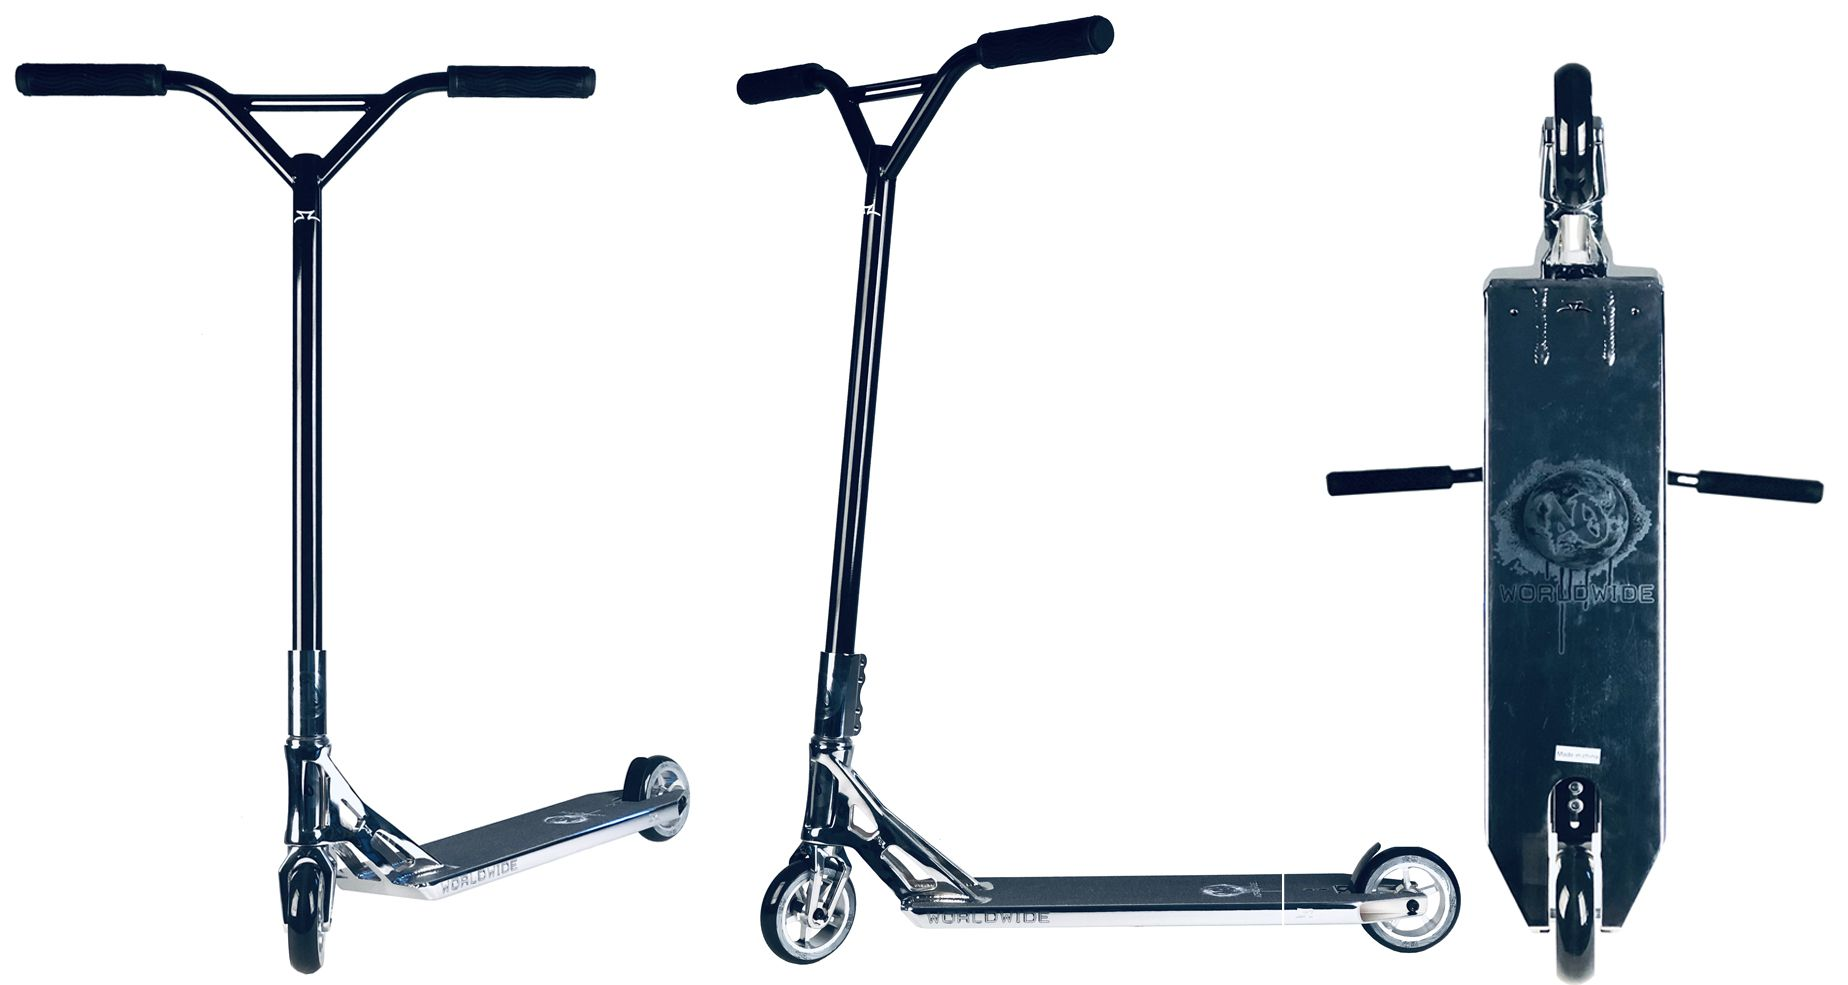 Complete AO Scooter Worldwide Complete 5.8 x22